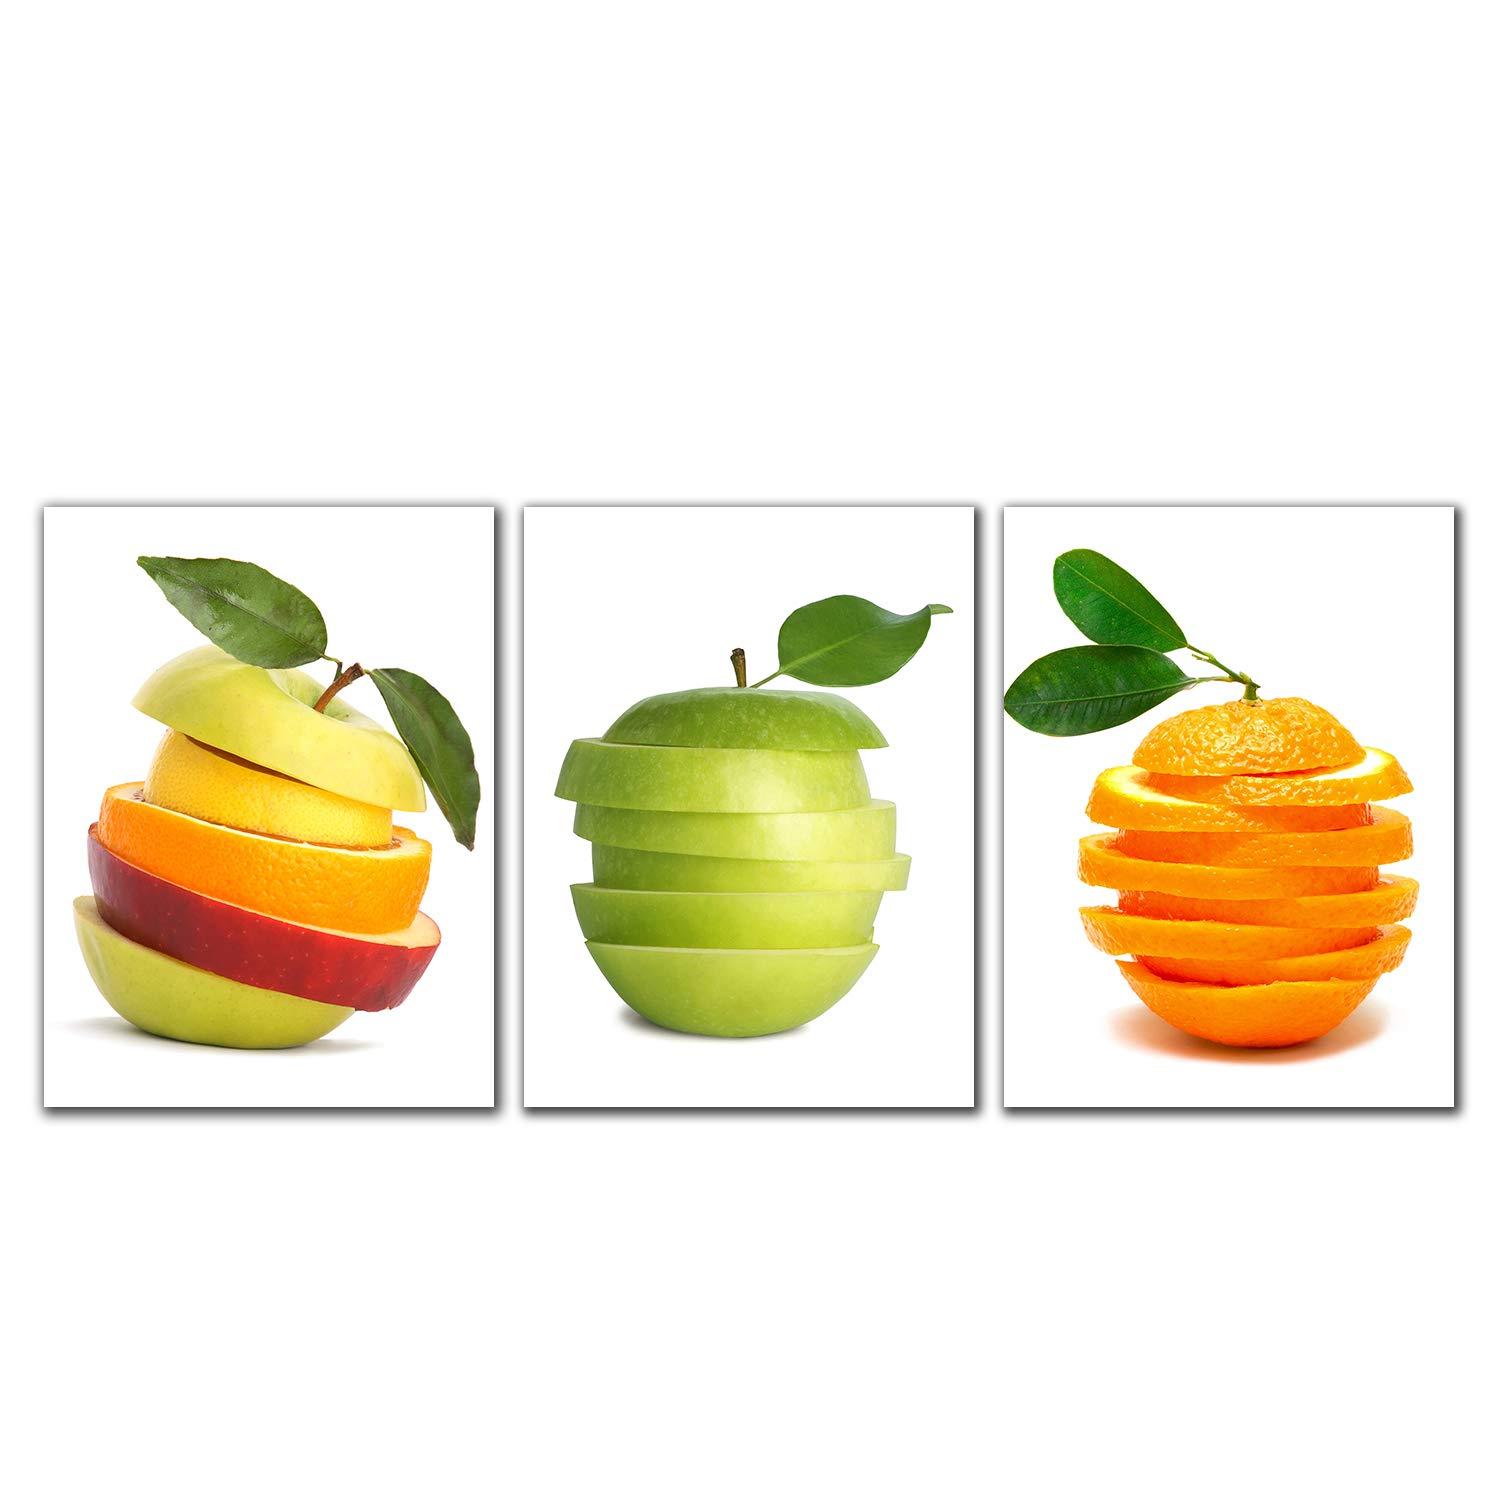 Spirit Up Art Huge Tasty Fruits Picture Painting on Canvas Print Stretched and Framed, Modern Home Decorations Wall Art set of 3 Each is 40*60cm #cy-561